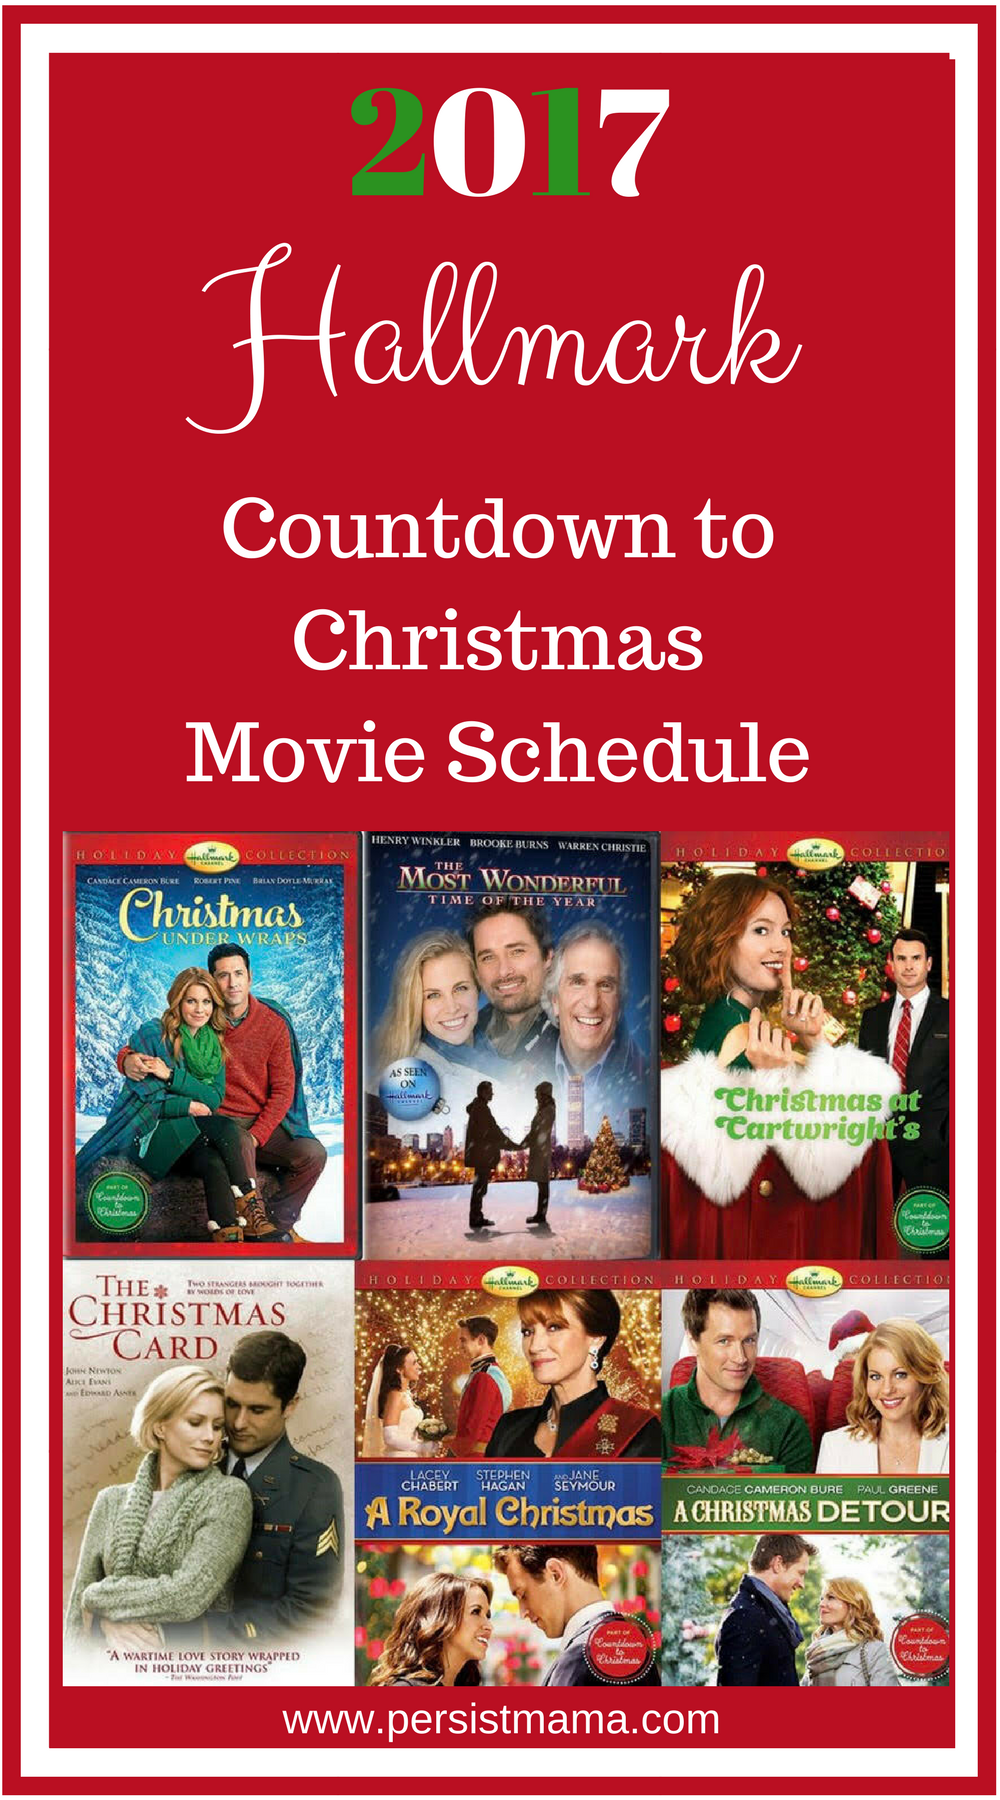 hallmark channels countdown to christmas movie schedule - What Christmas Movies Are On Tv Tonight